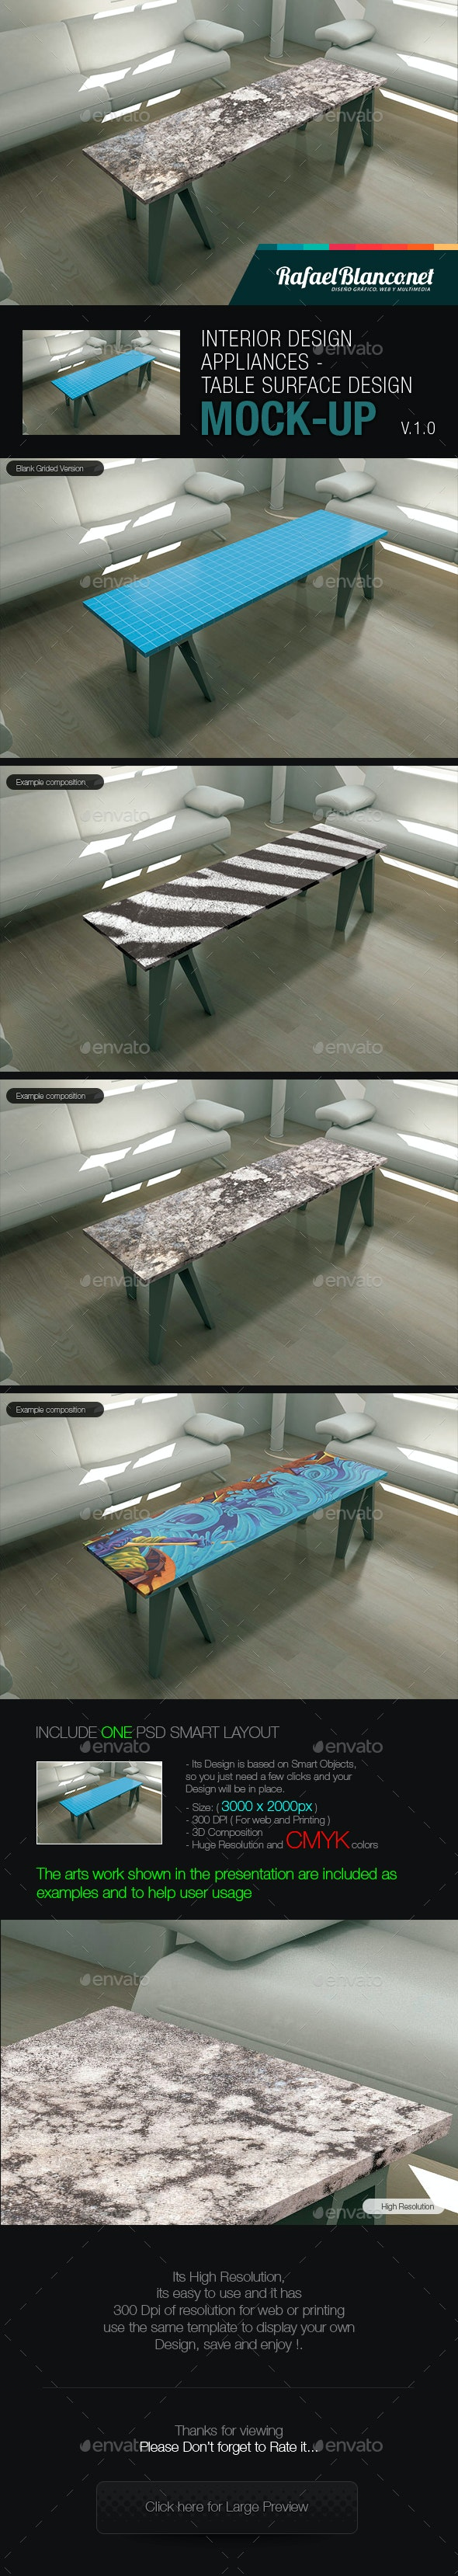 Table for Appliance surface Design Mock-Up - Miscellaneous Displays